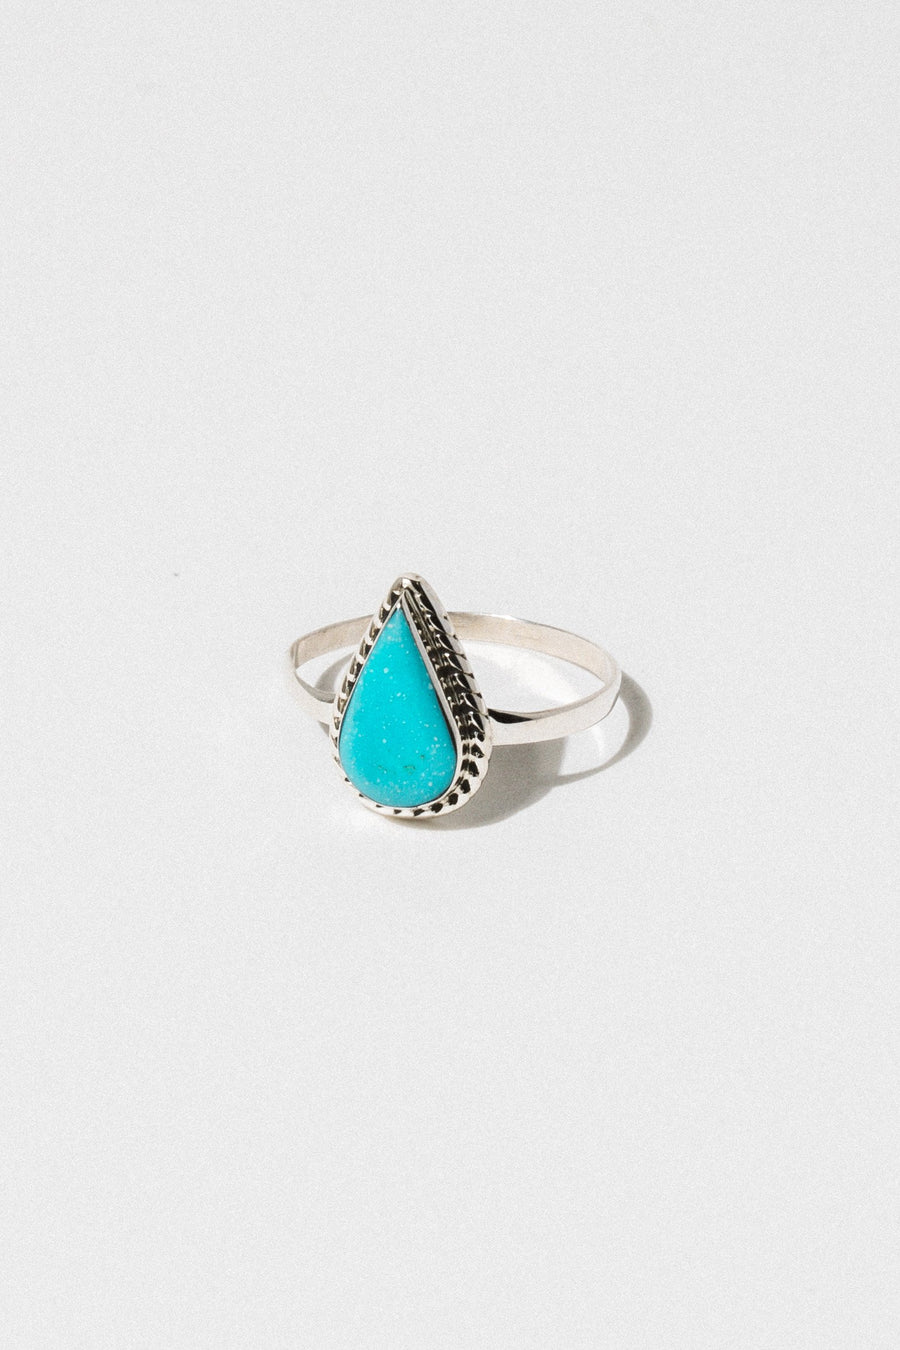 Thunderbird Jewelry Jewelry Turquoise / US 5 Tear Drop Navajo Ring